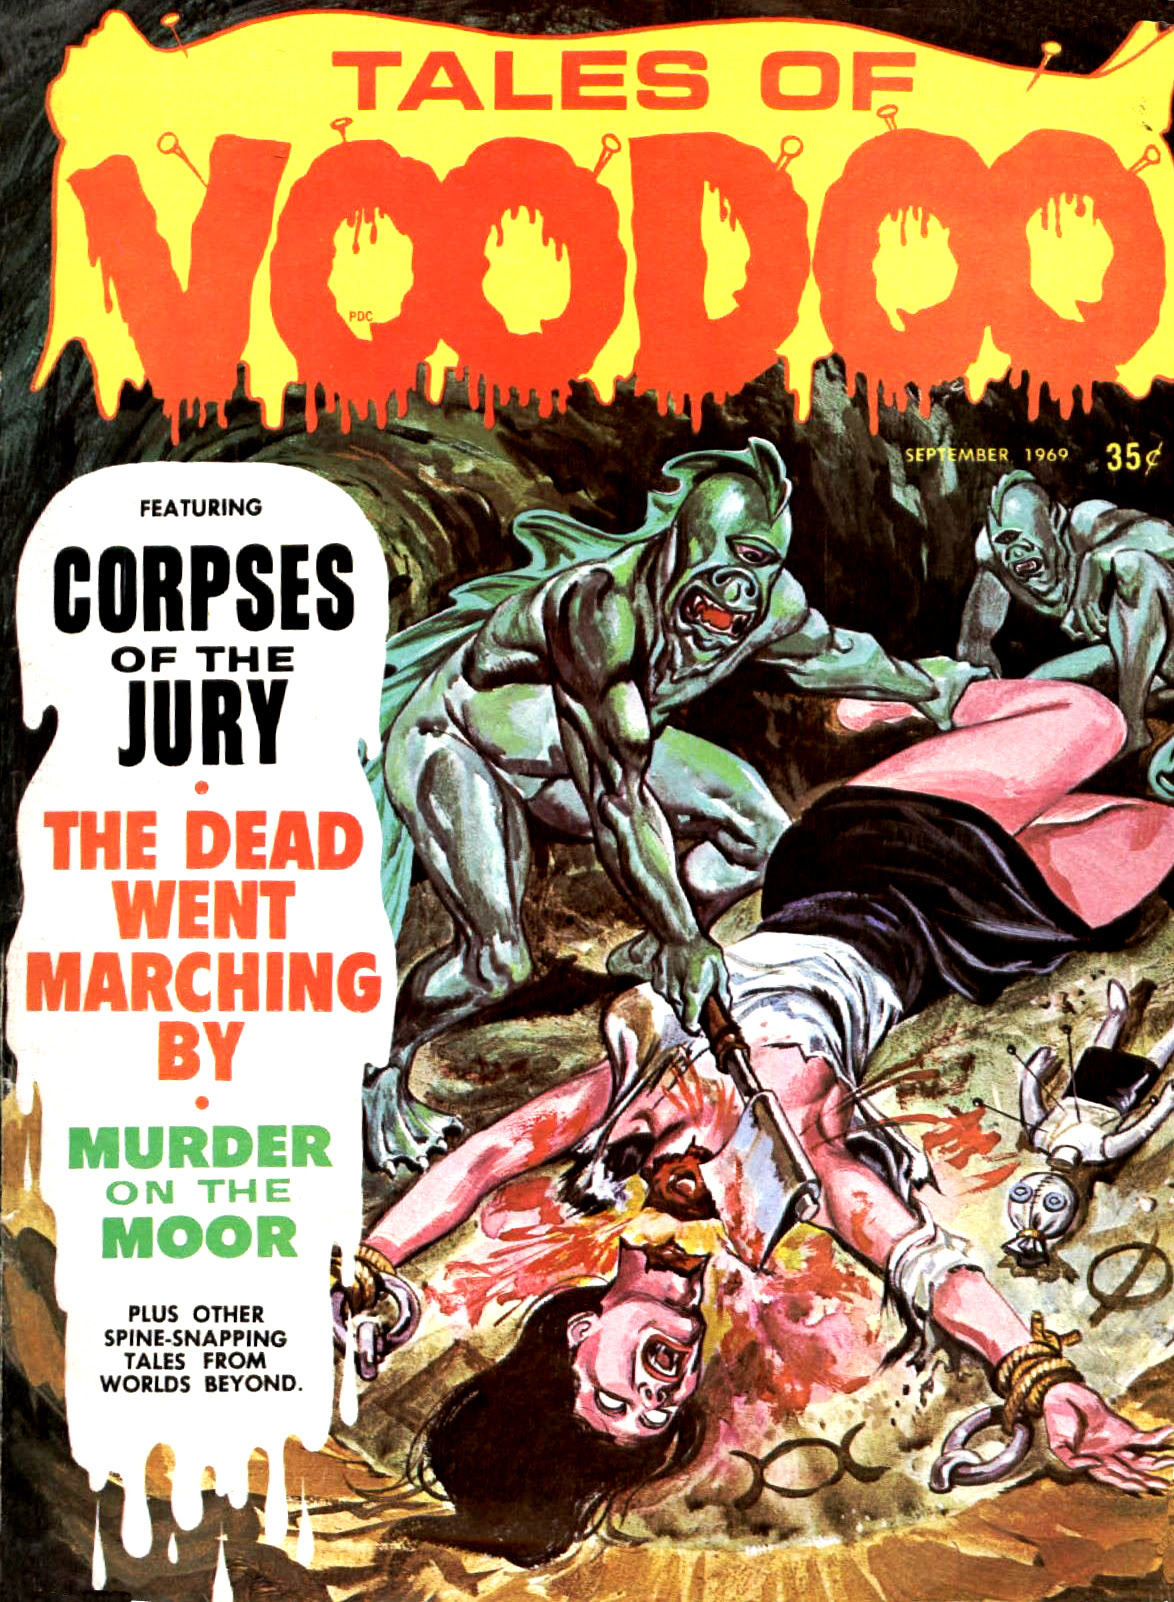 Tales of Voodoo Vol. 2 #4 (Eerie Publications 1969)